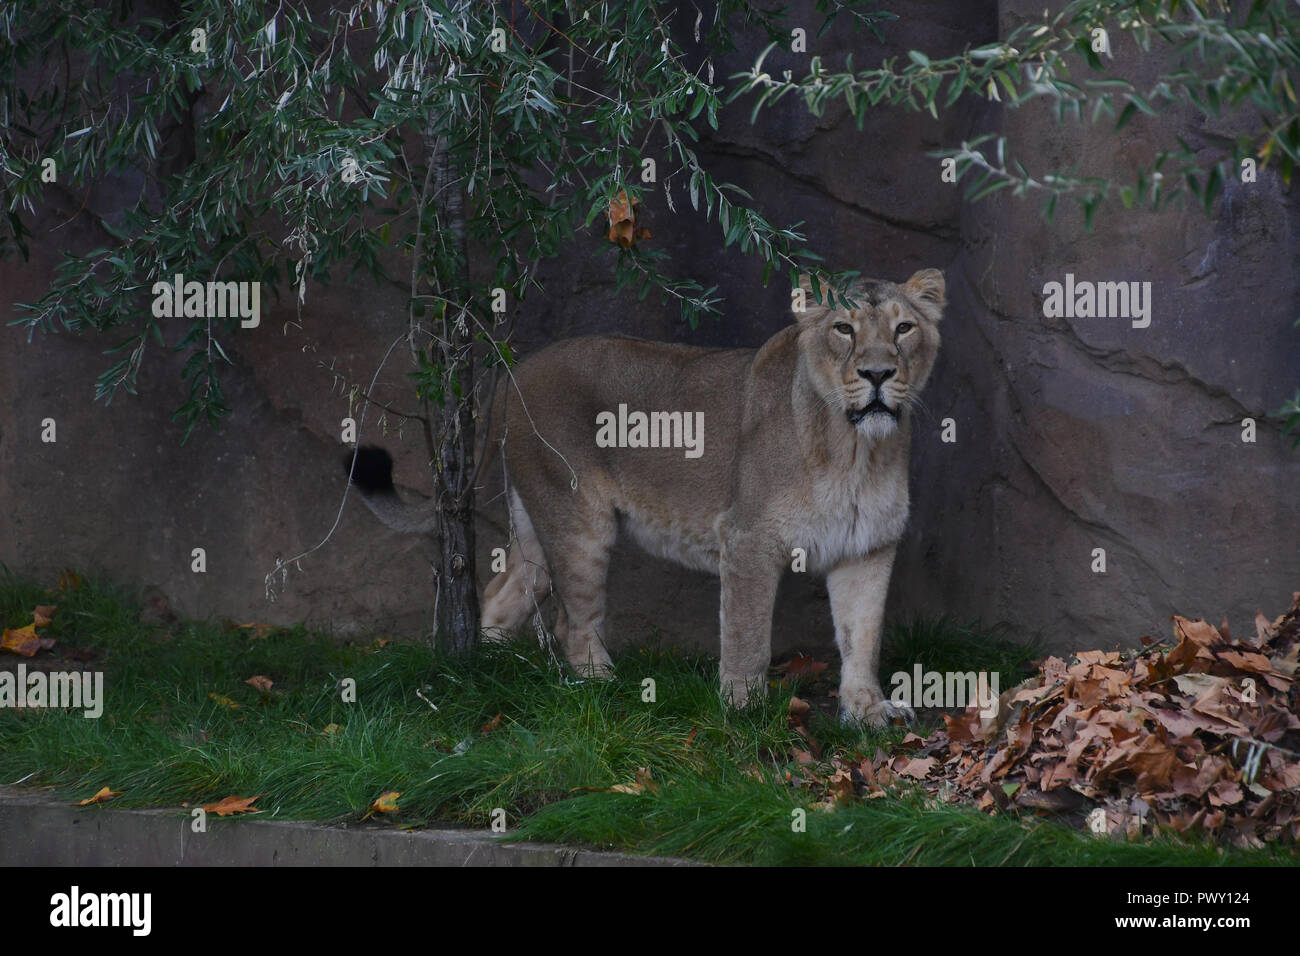 Londres, Royaume-Uni. 18 Oct 2018. ZLS London Zoo's lions asiatiques célébrer l'arrivée de l'automne avec traiter parfumées, Londres, Royaume-Uni. 18 octobre 2018. 18 octobre 2018. Credit Photo : Alamy/Capital Live News Banque D'Images